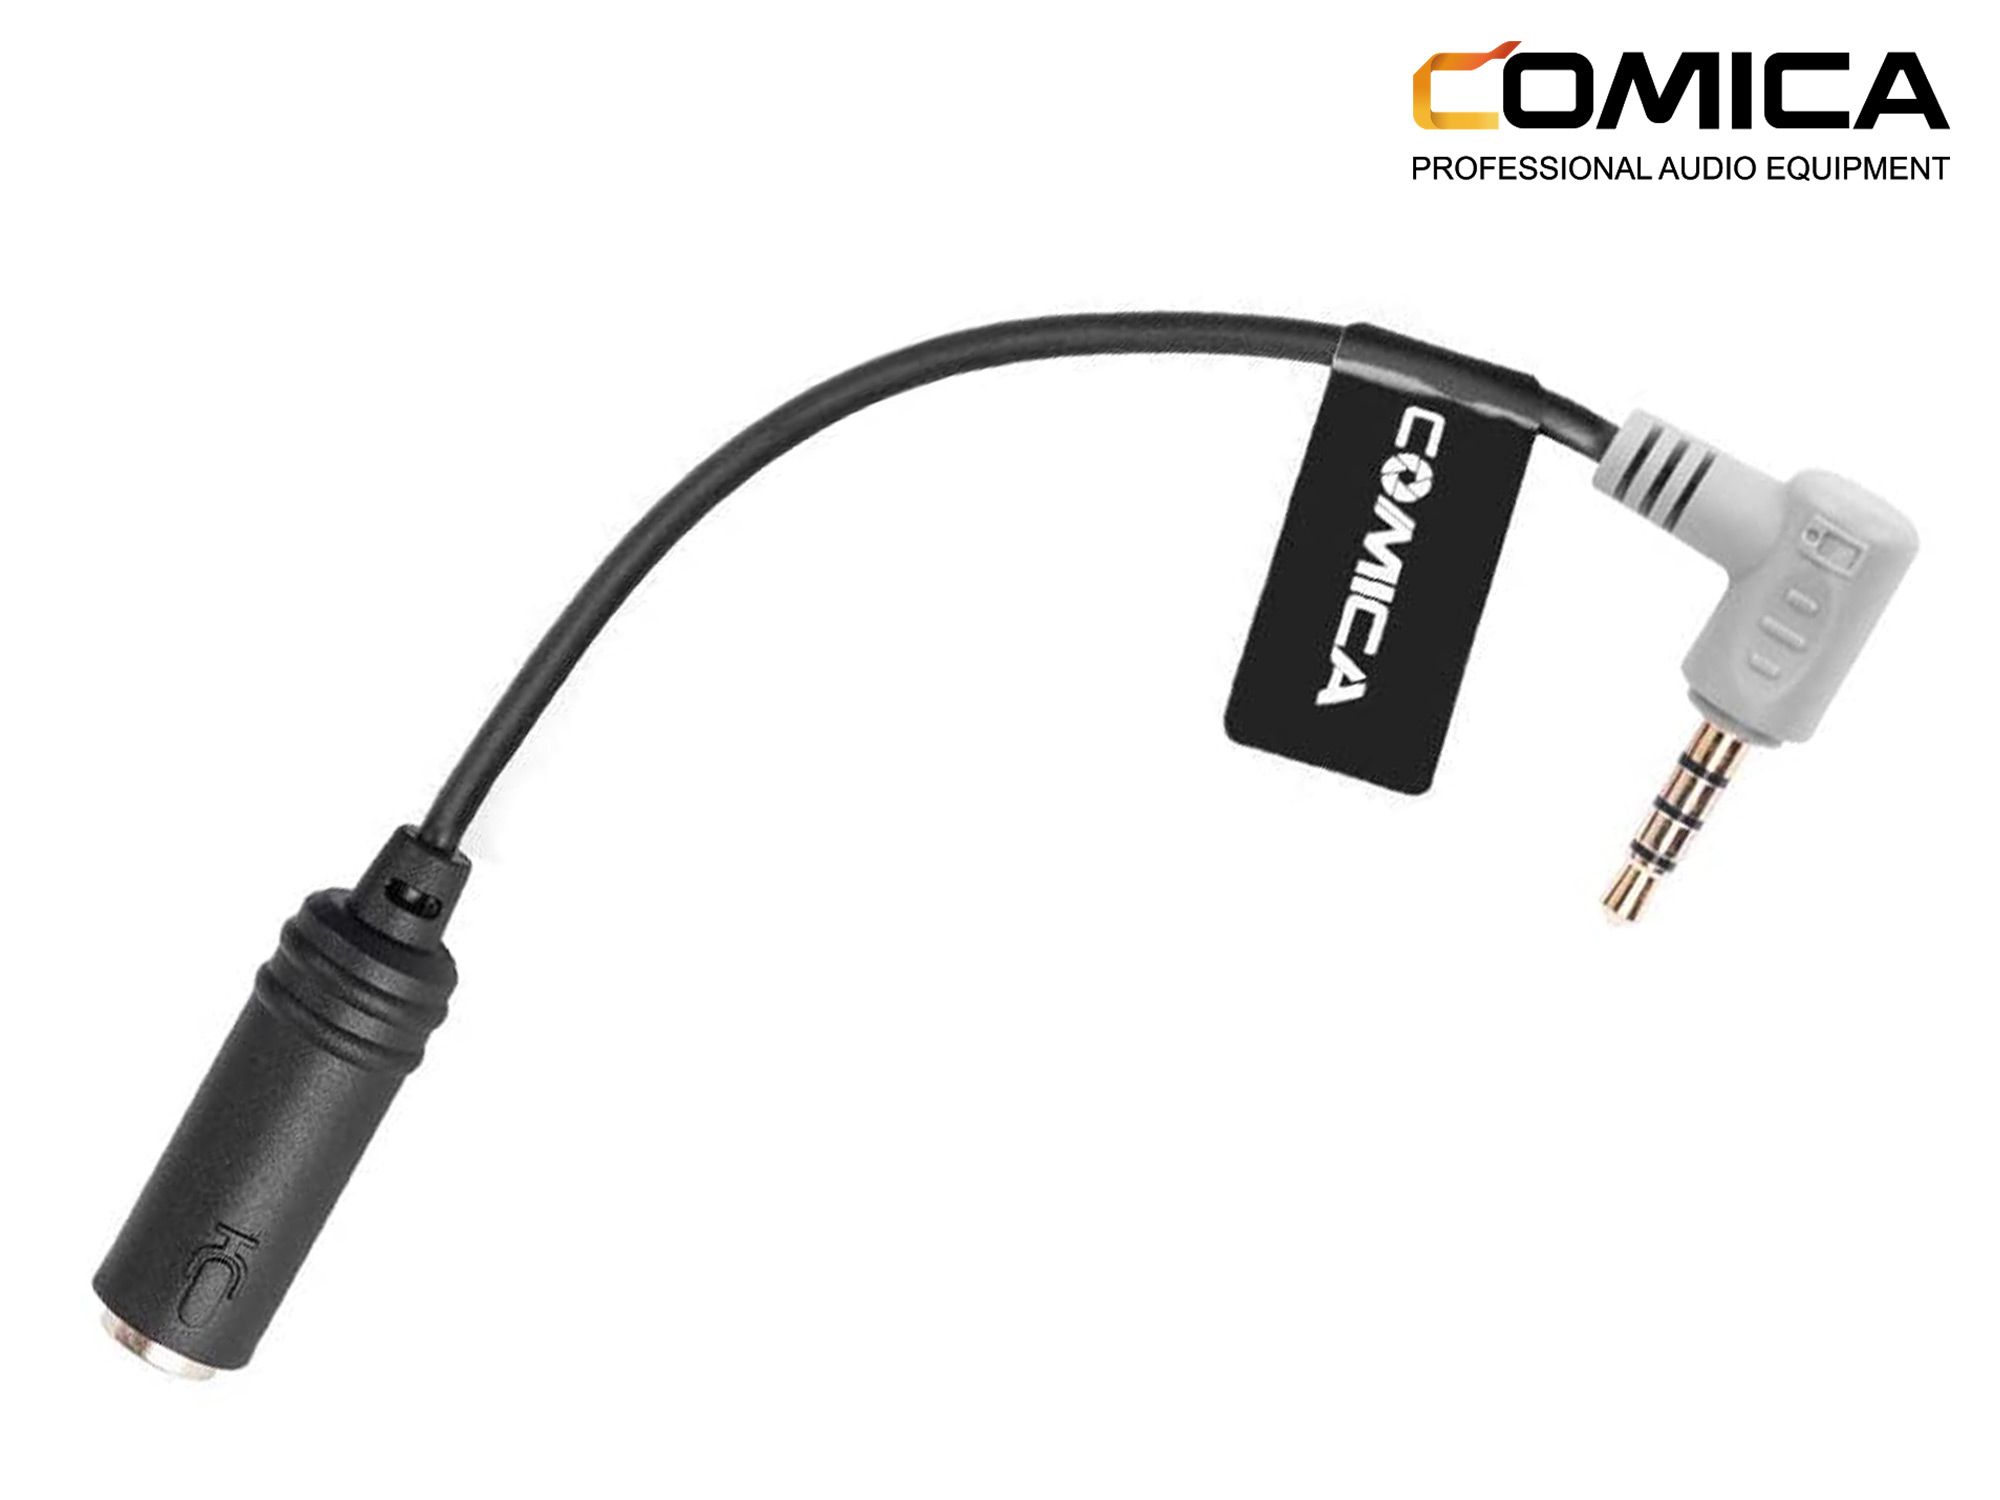 Comica Audio TRS-TRRS Audio Cable Adapter For Smartphone